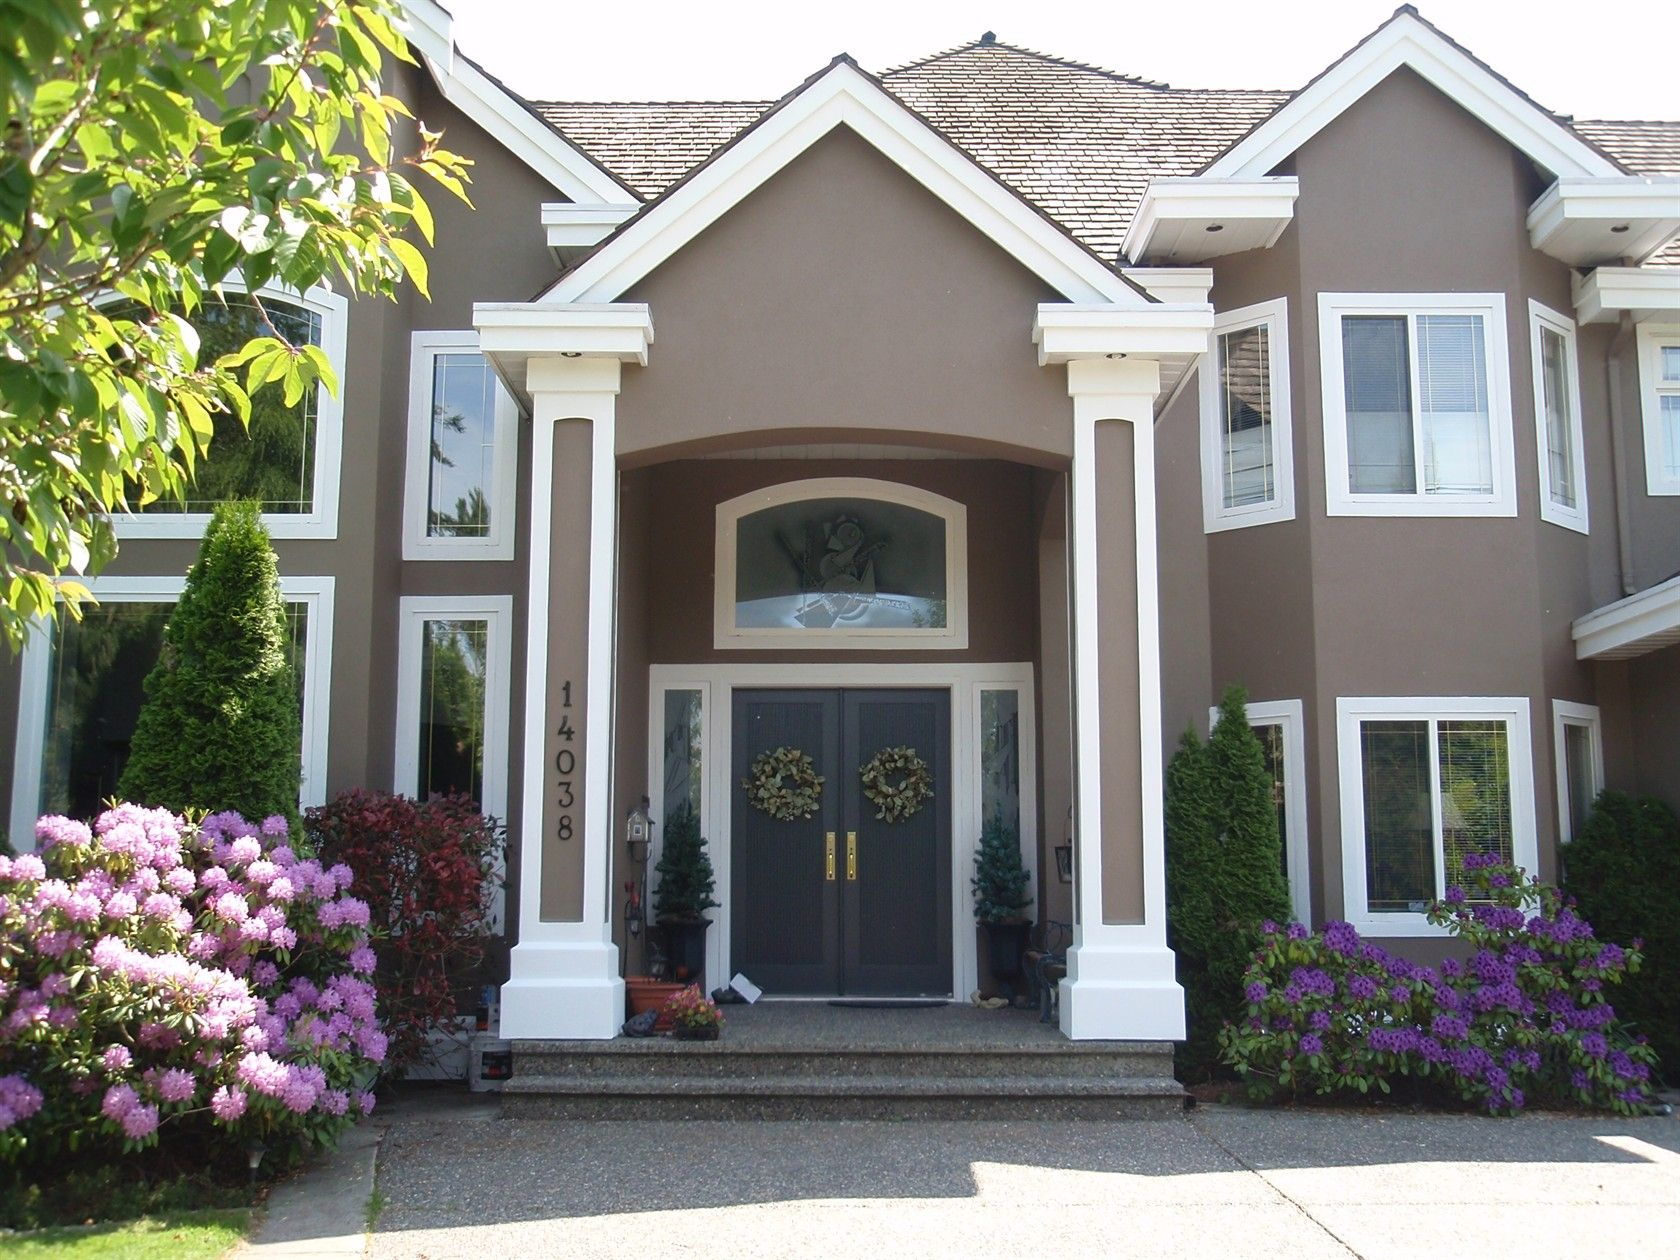 Astonishing Paint Colors For House Exterior Gray Brown For Main Color Largest Home Design Picture Inspirations Pitcheantrous